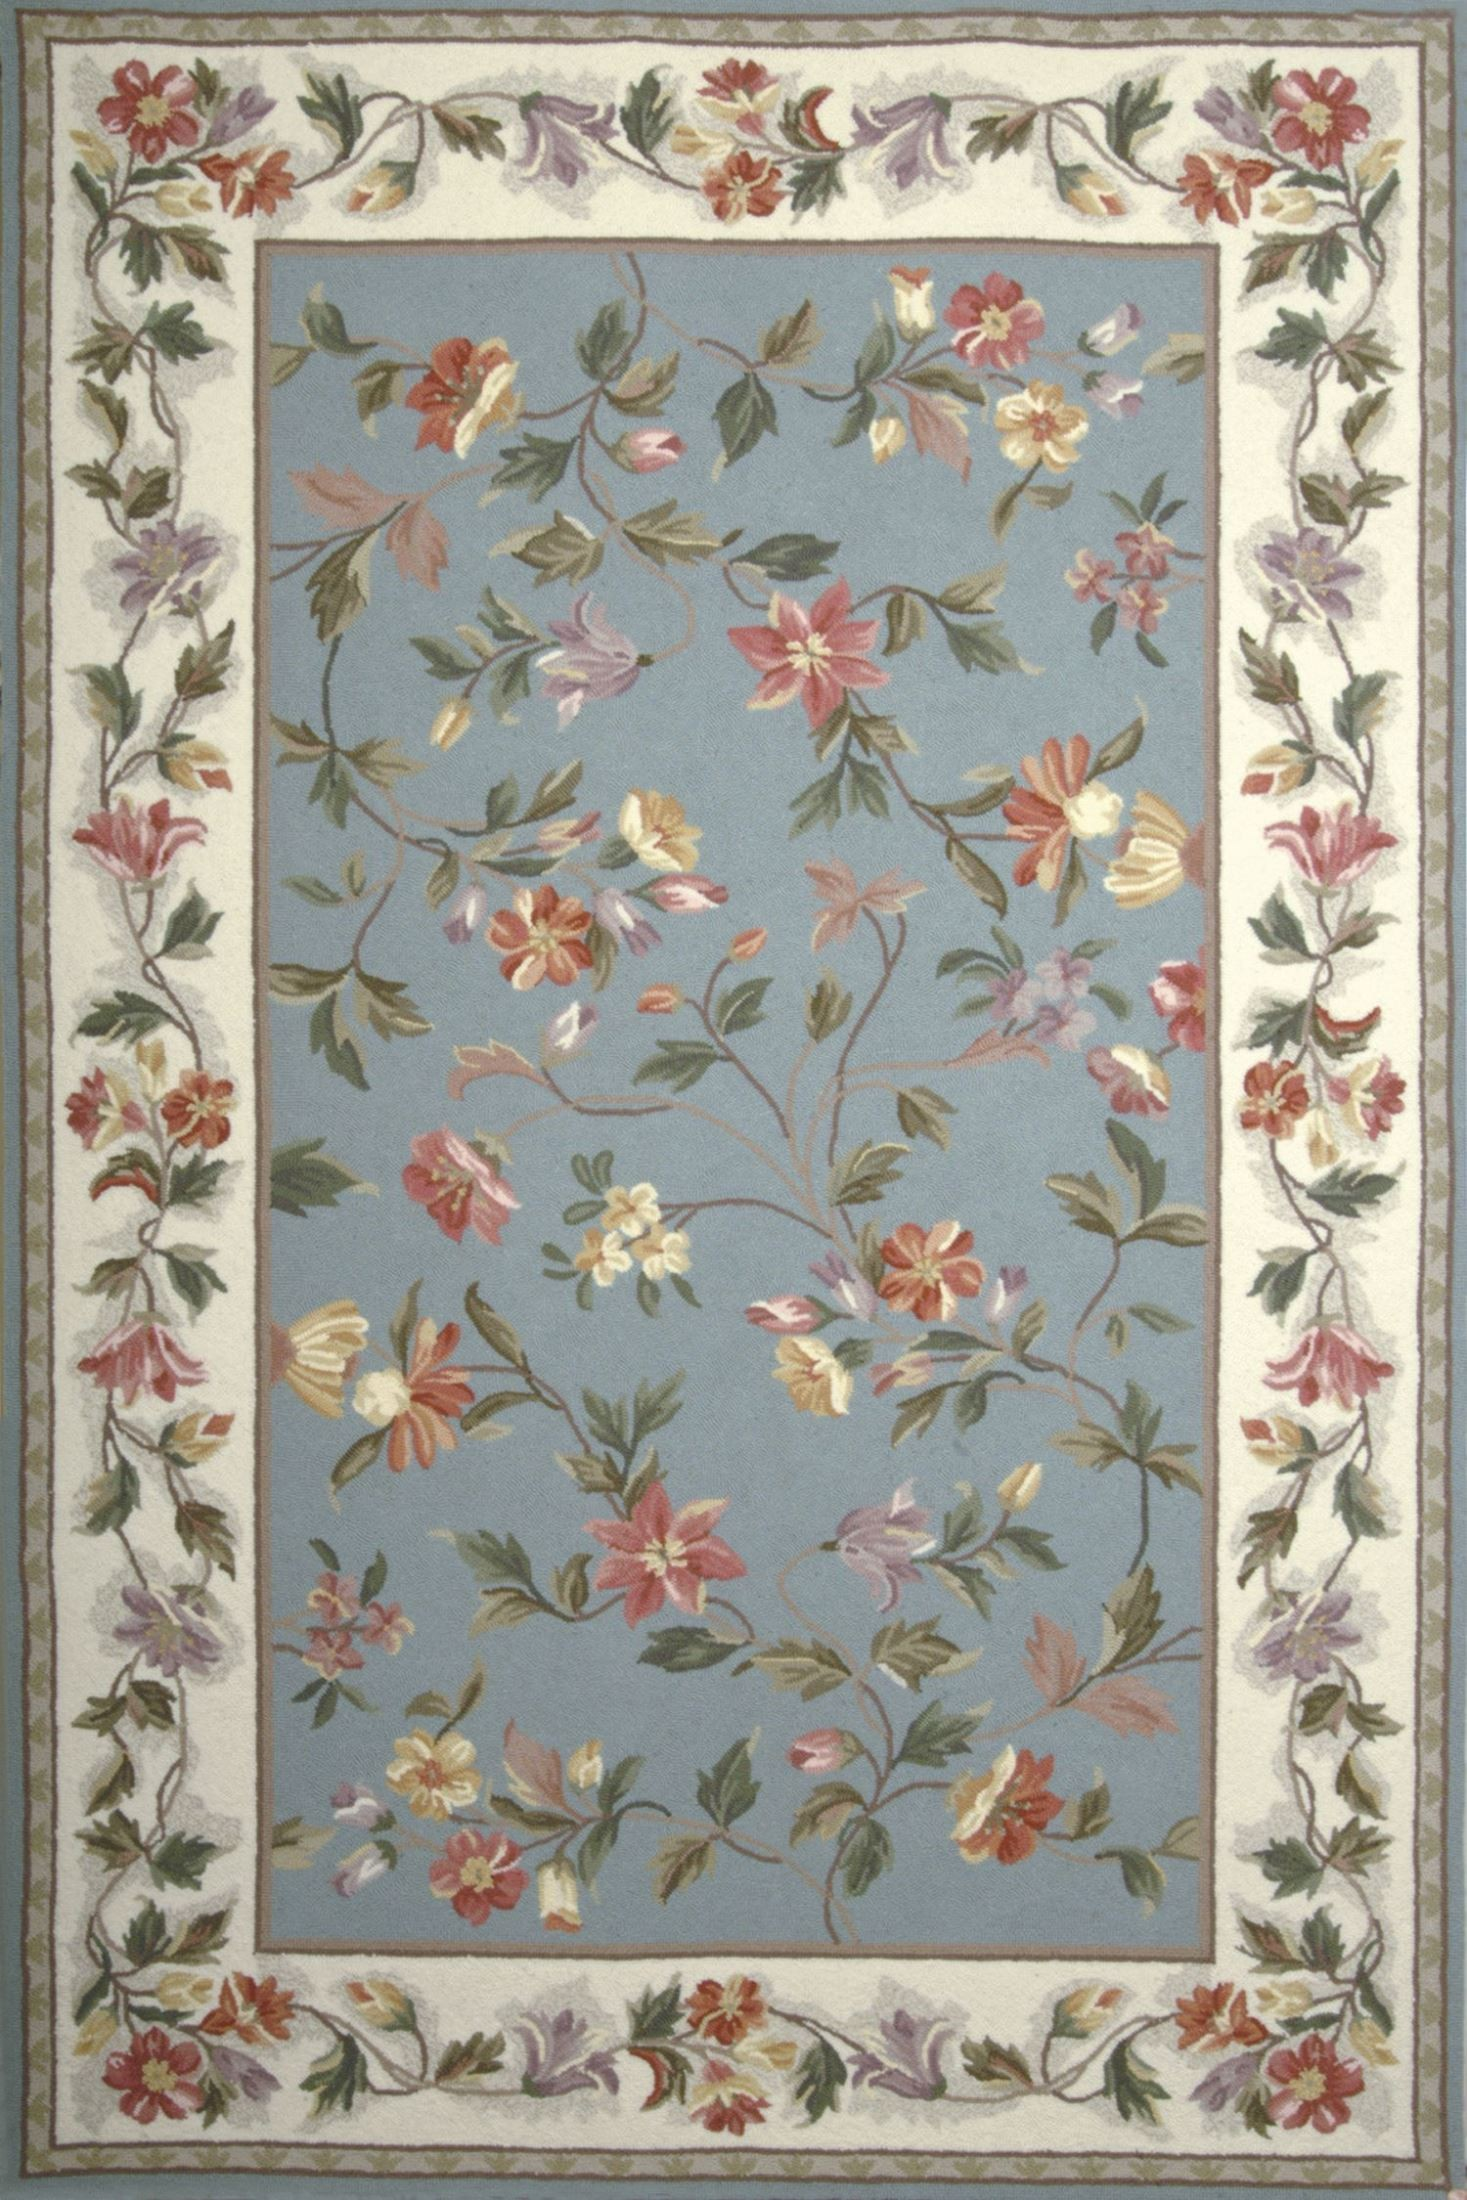 Colonial Slate Blue And Ivory Floral 90 Quot X 90 Quot Rug From